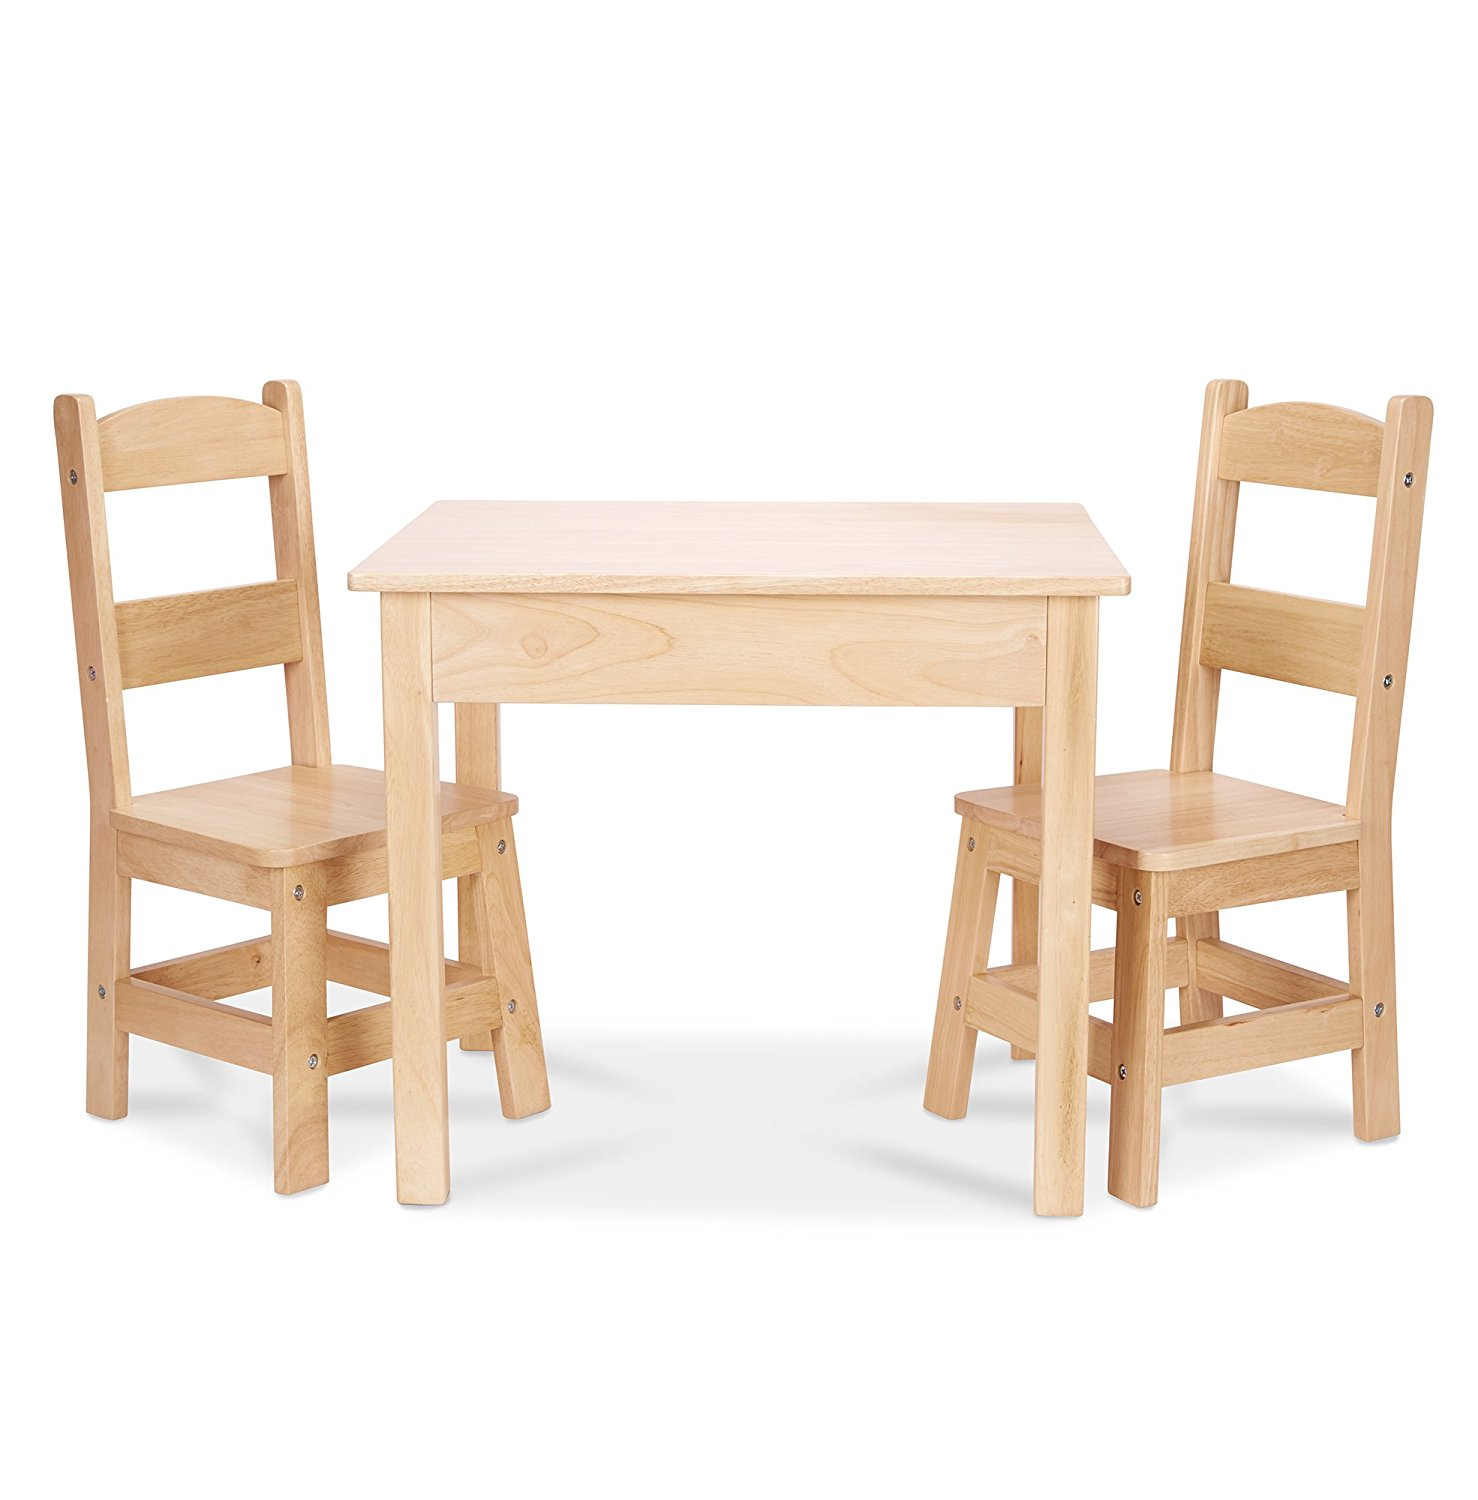 Melissa doug solid wood table and 2 chairs set light for Table and chairs